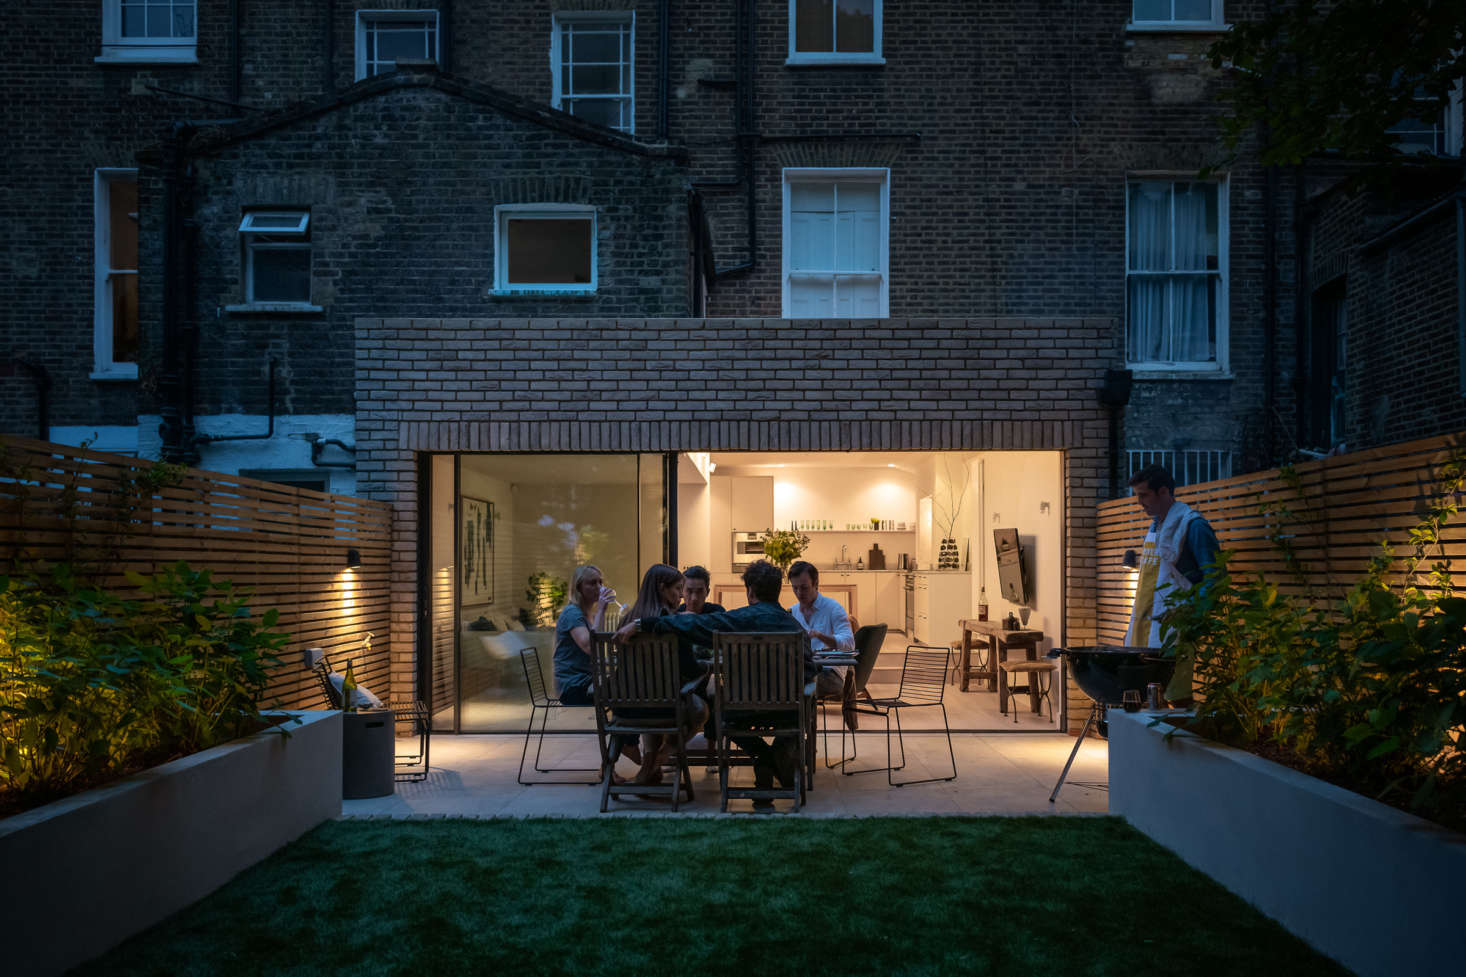 """""""My favorite time of day is at nighttime. When the garden lights are on and the living room/kitchen is dimmed down, it feels very moody and calming."""""""